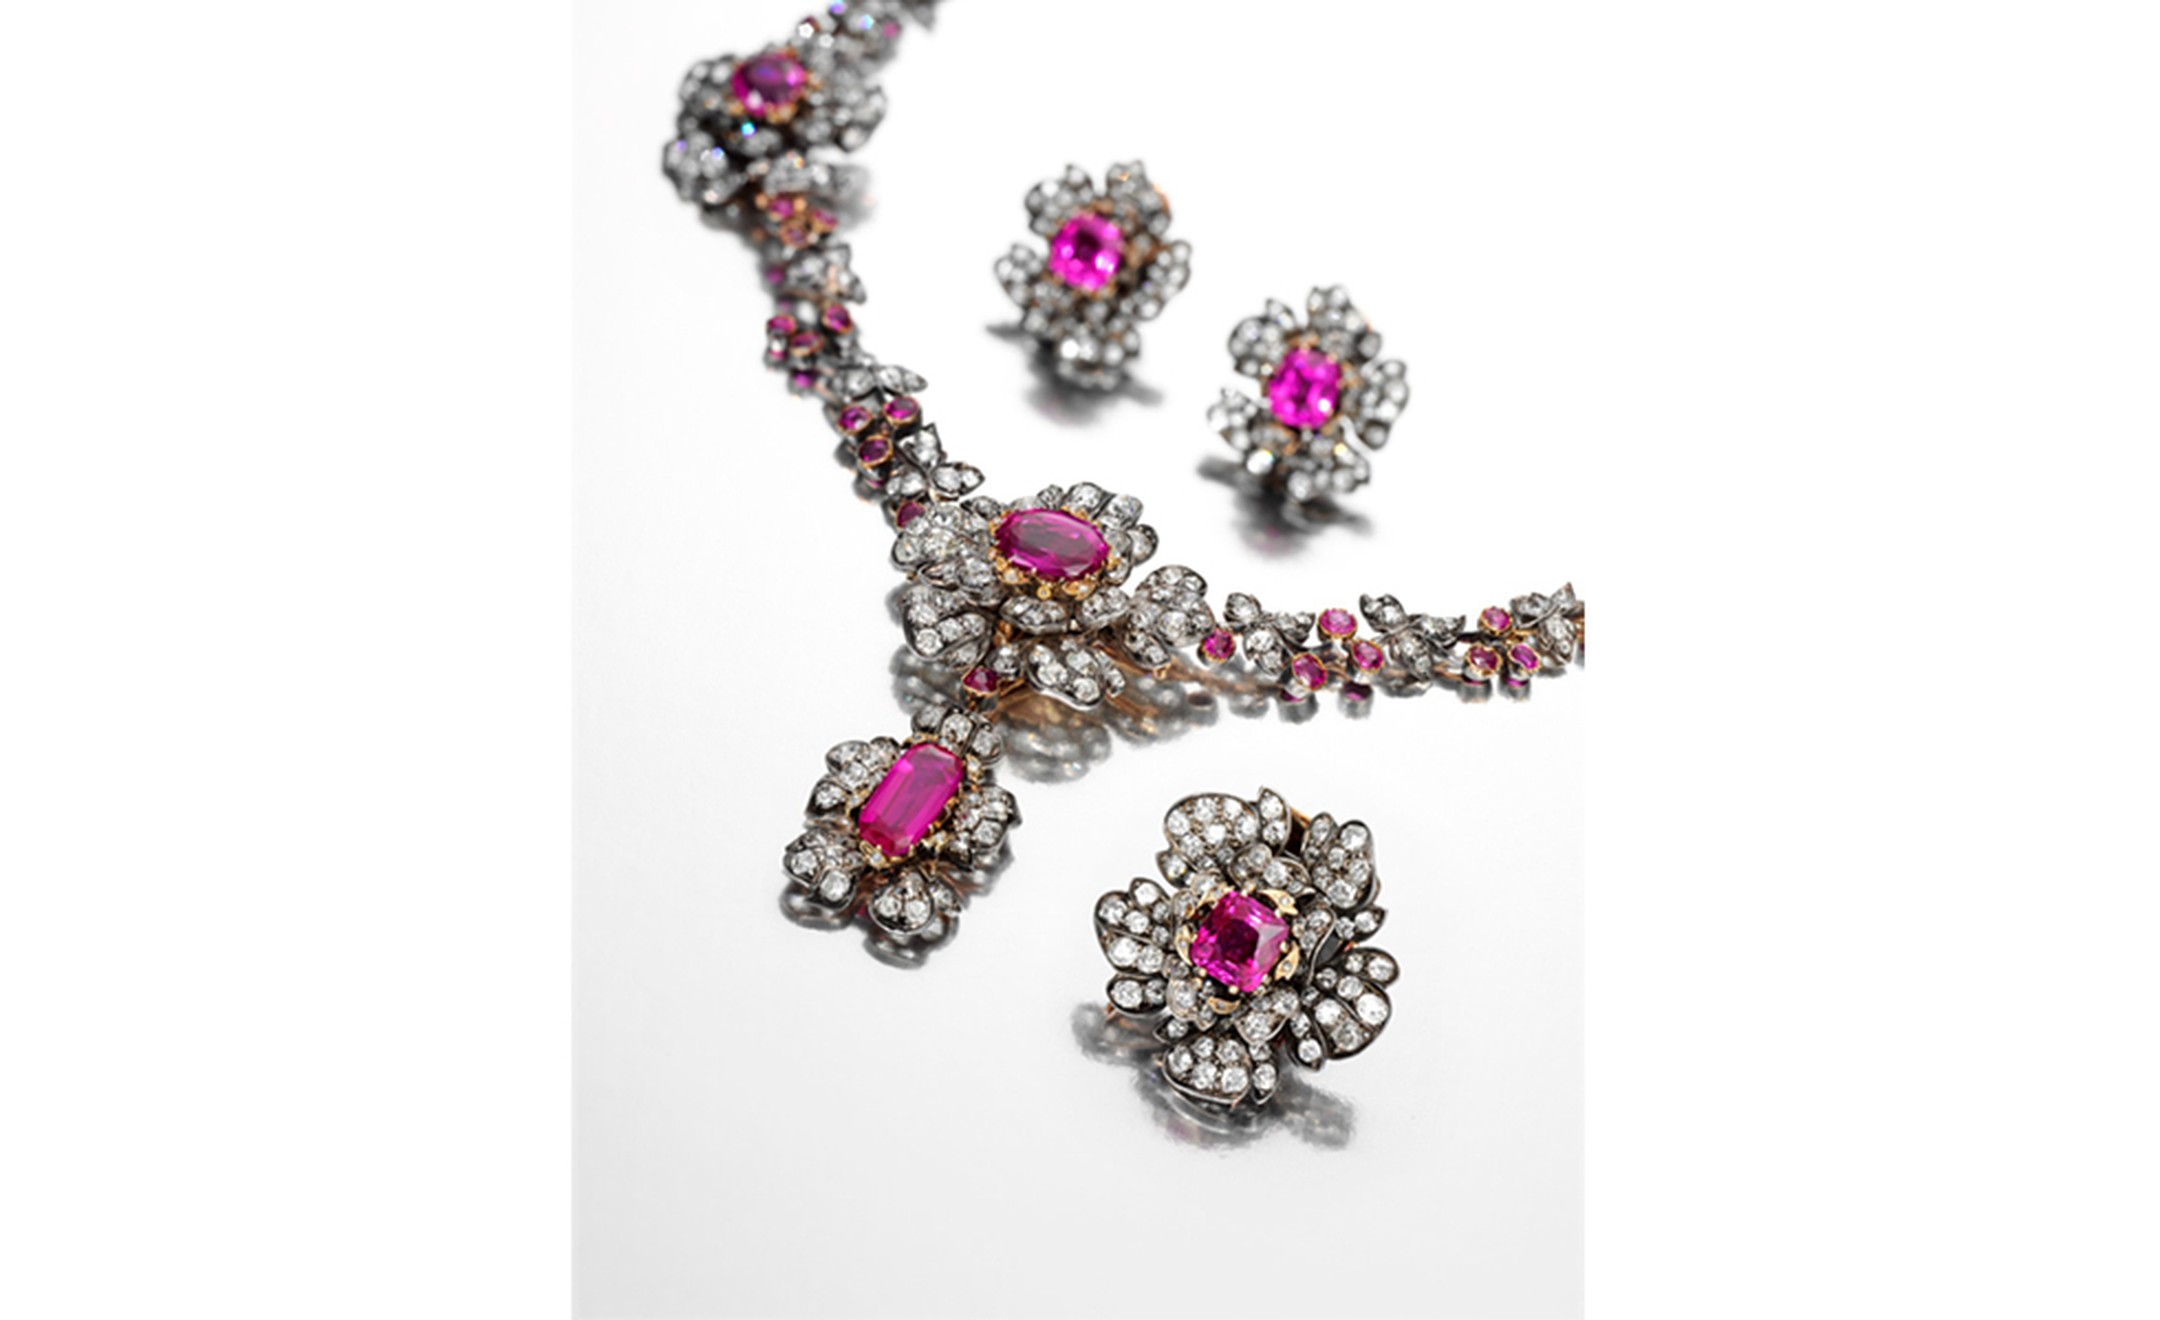 Ruby and diamond necklace, clip and earrings, 19th century + box, 19th century. Estimate CHF 185,000 – 360,000